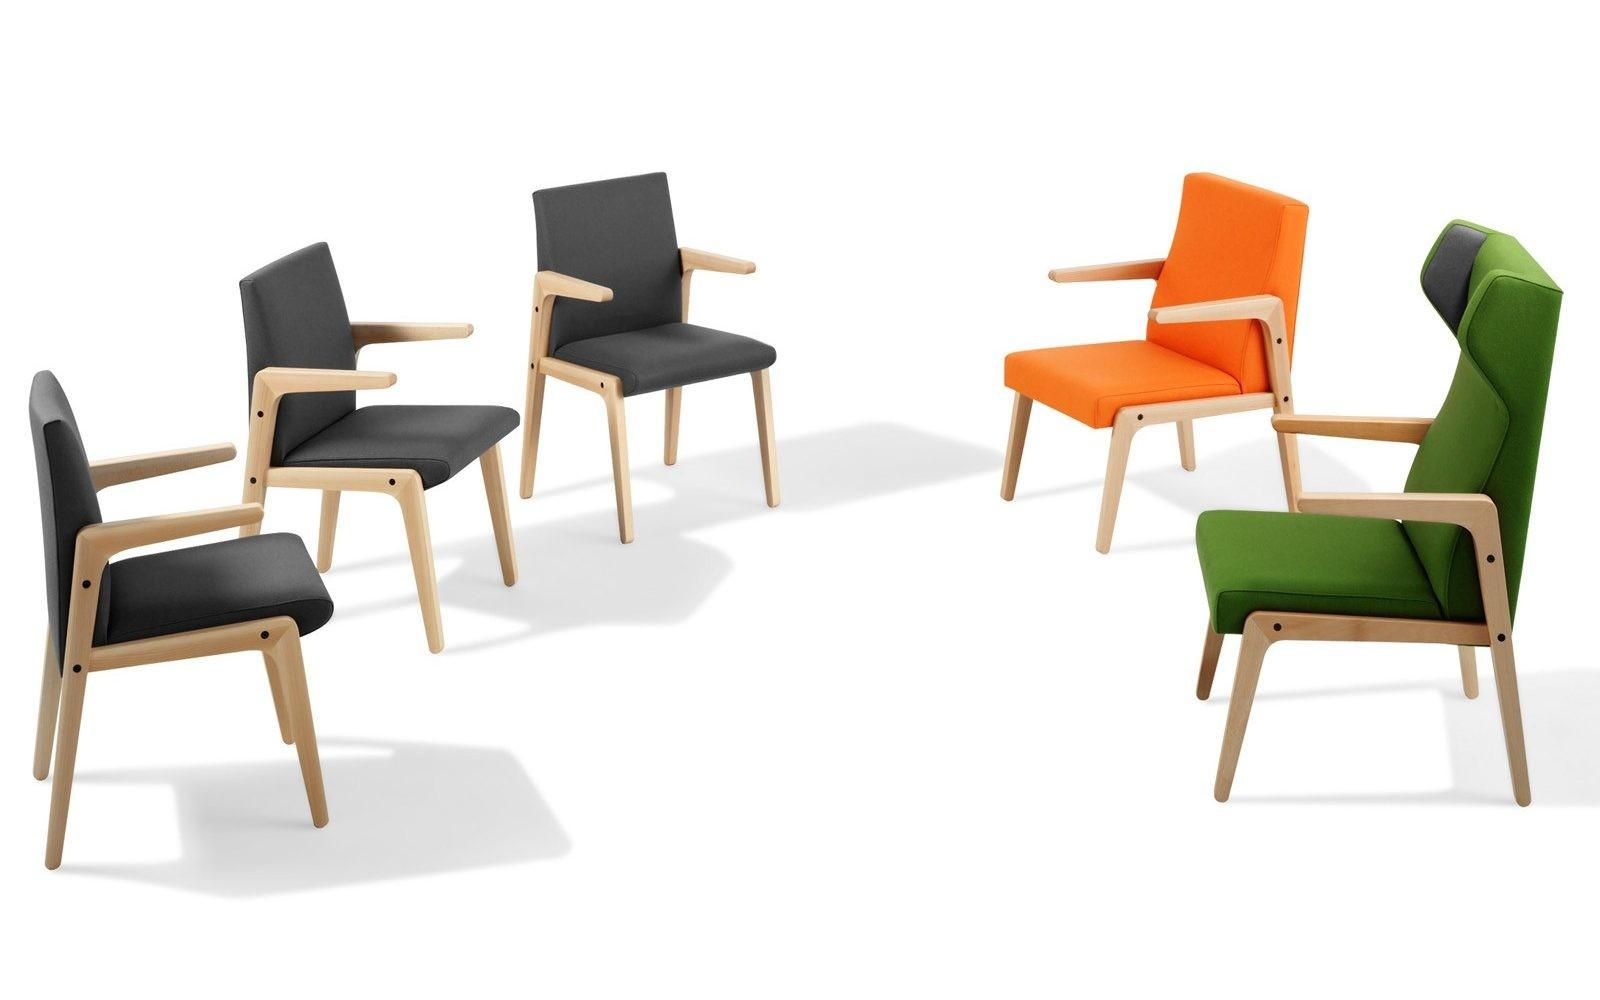 Latest Generation Healthcare Furniture Designed